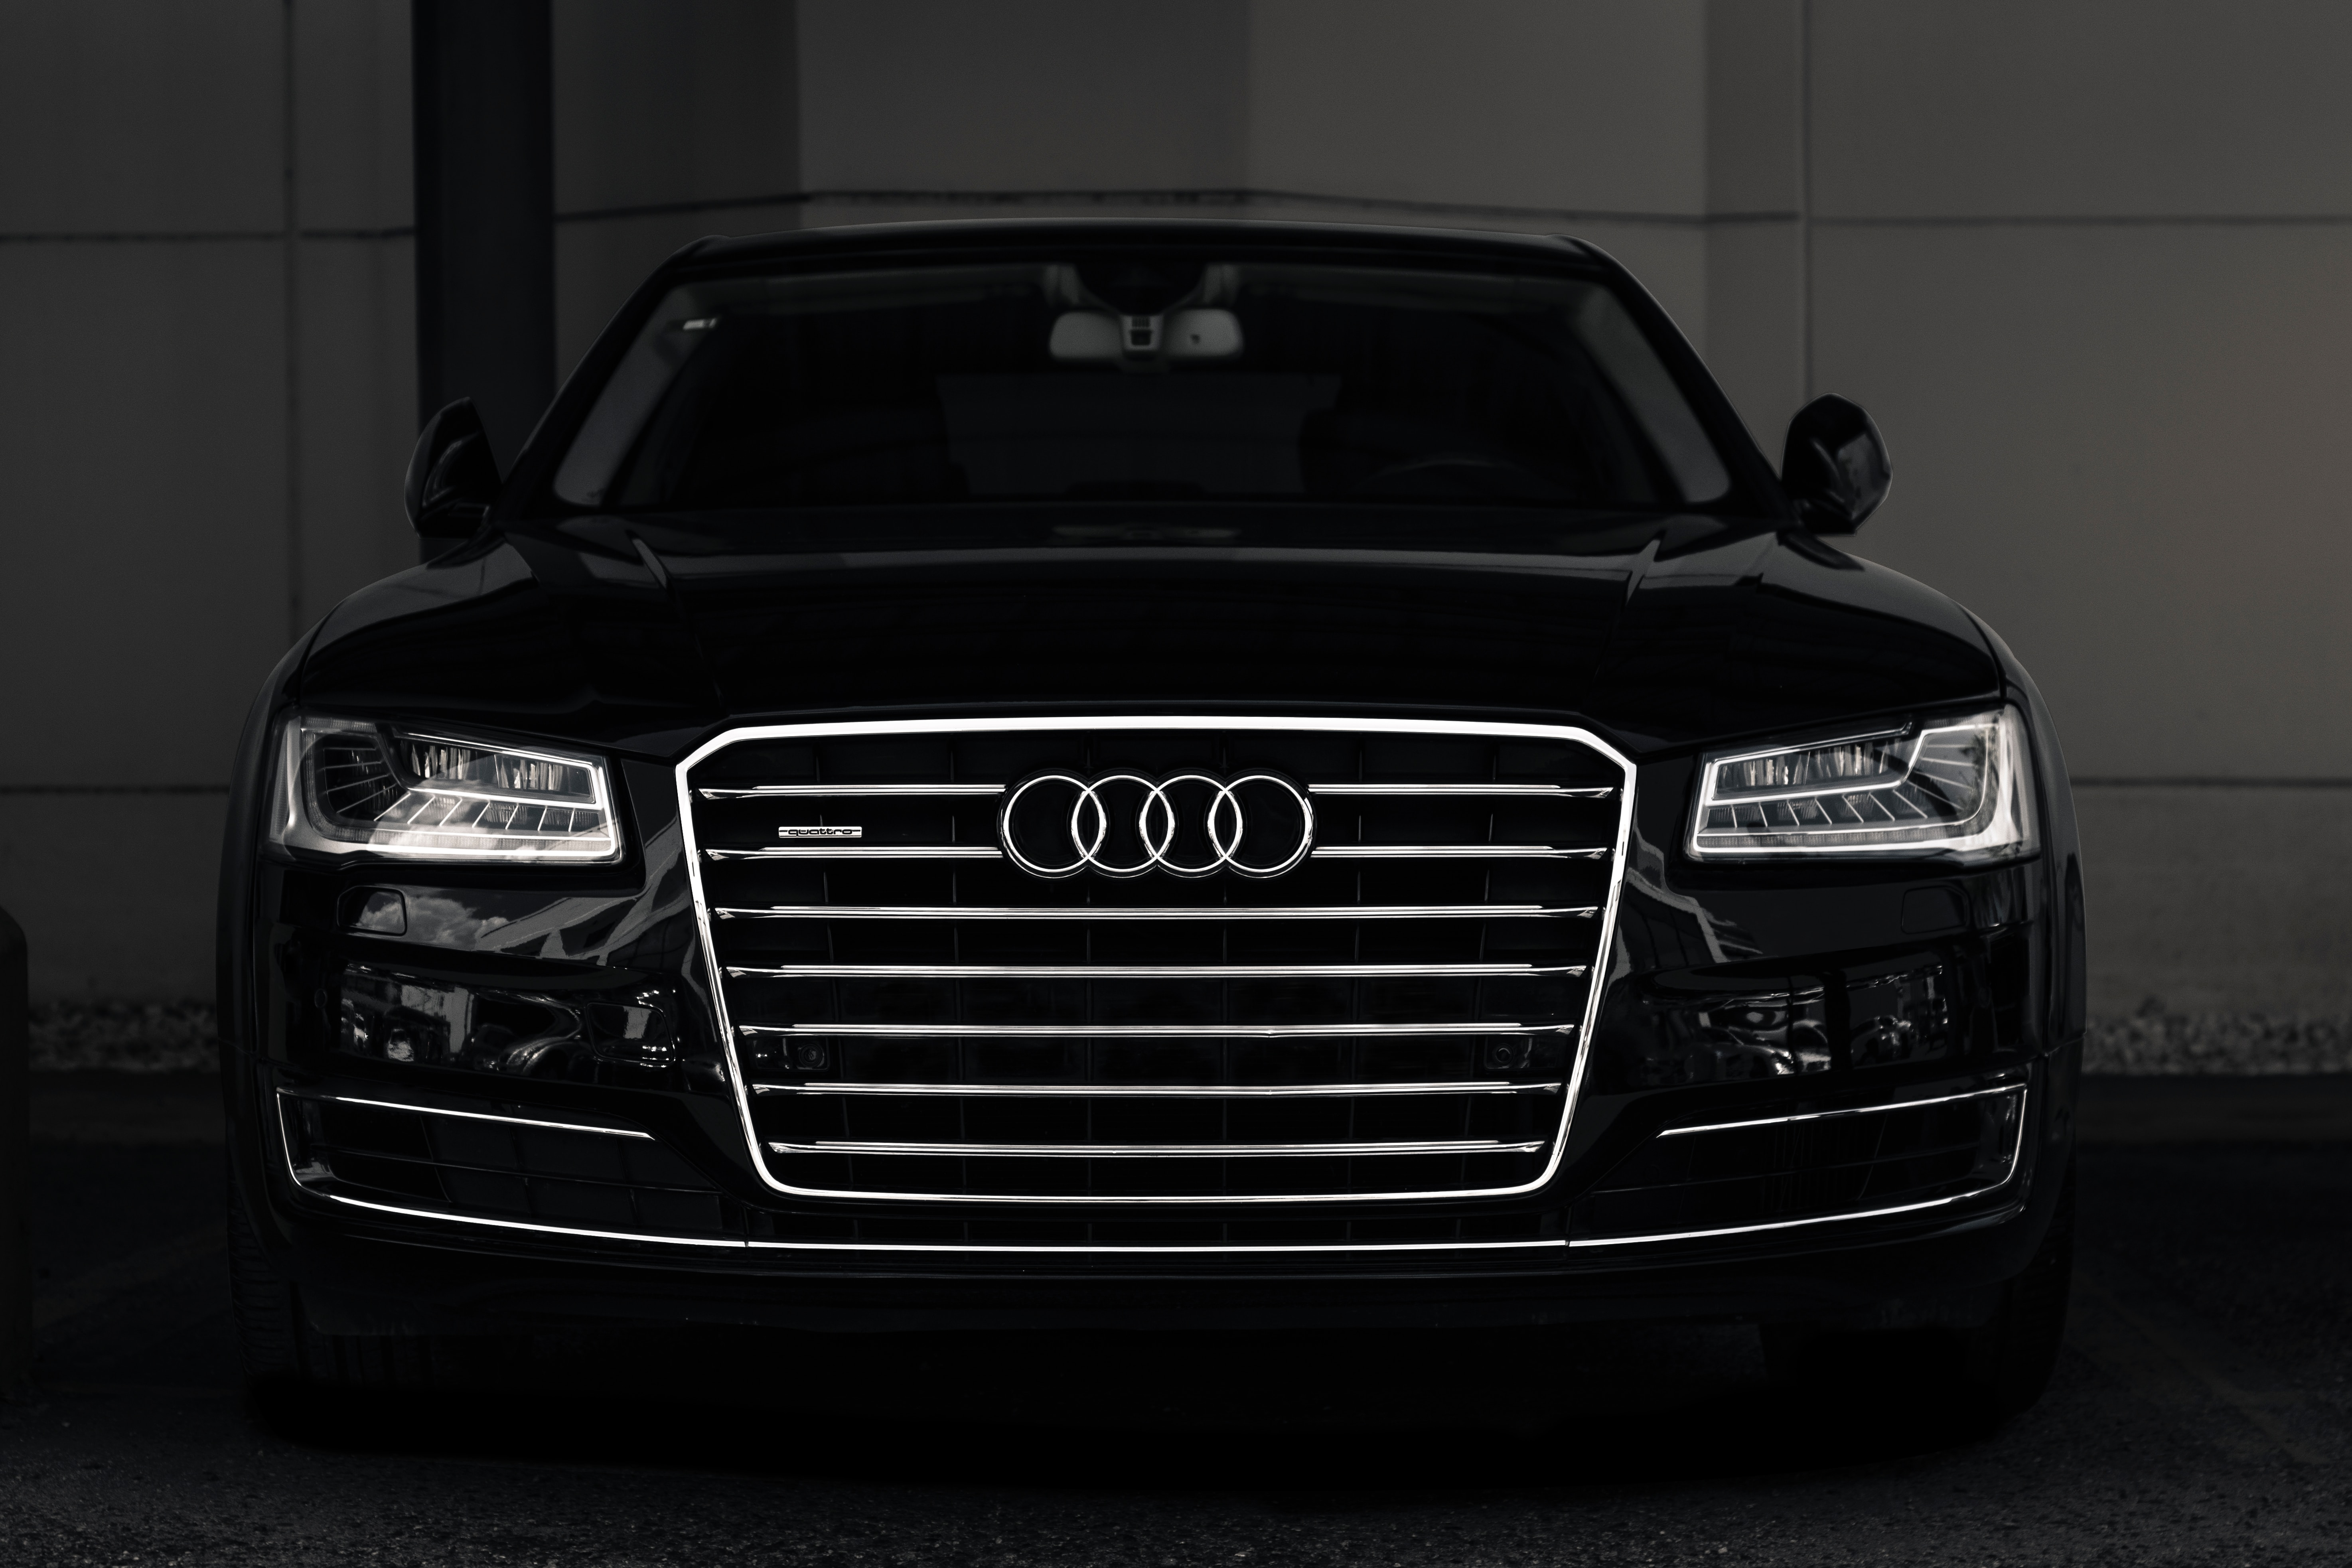 Top Audi Models to Consider Buying